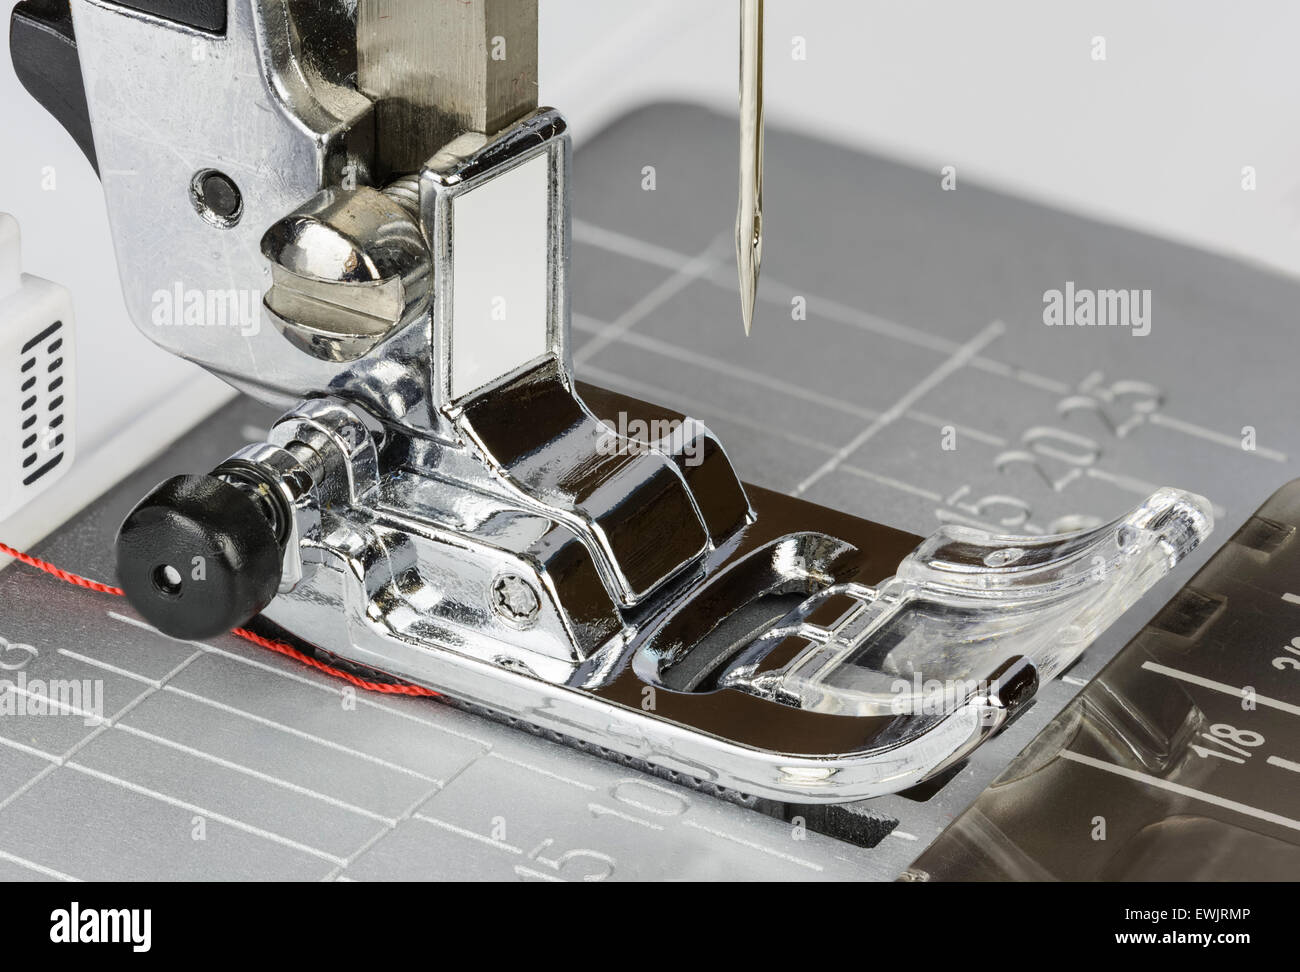 Closeup of the presser foot and needle of an electric sewing machine. - Stock Image